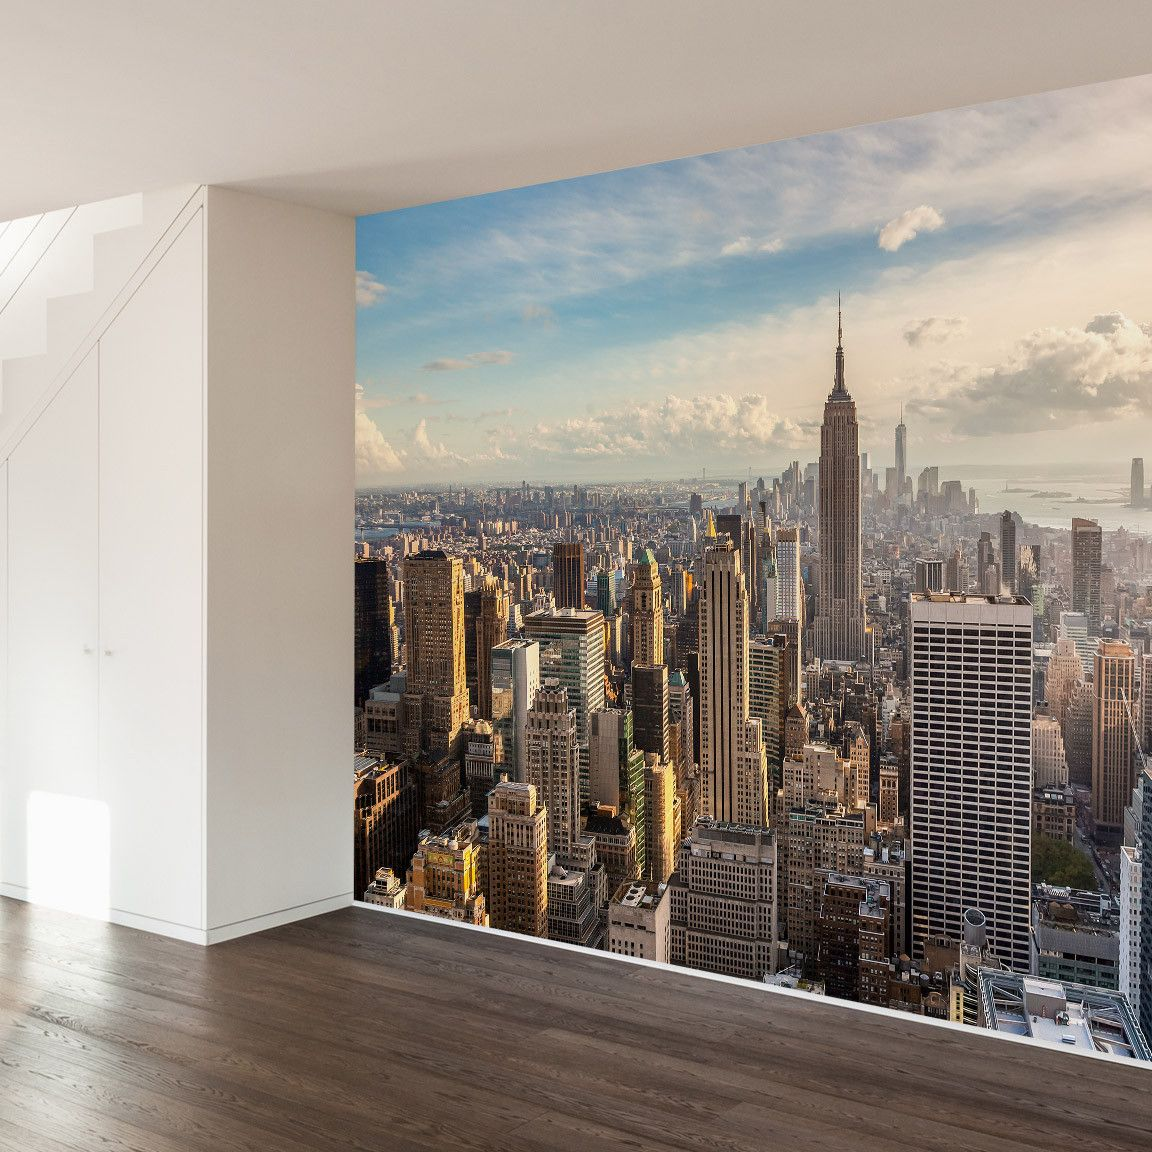 New York Bedroom Wallpaper Uk Bedroom Paint Ideas Tumblr Bedroom Color Ideas Pictures Mezzanine Bedroom Design Ideas: One For The Dreamers Wall Mural Decal